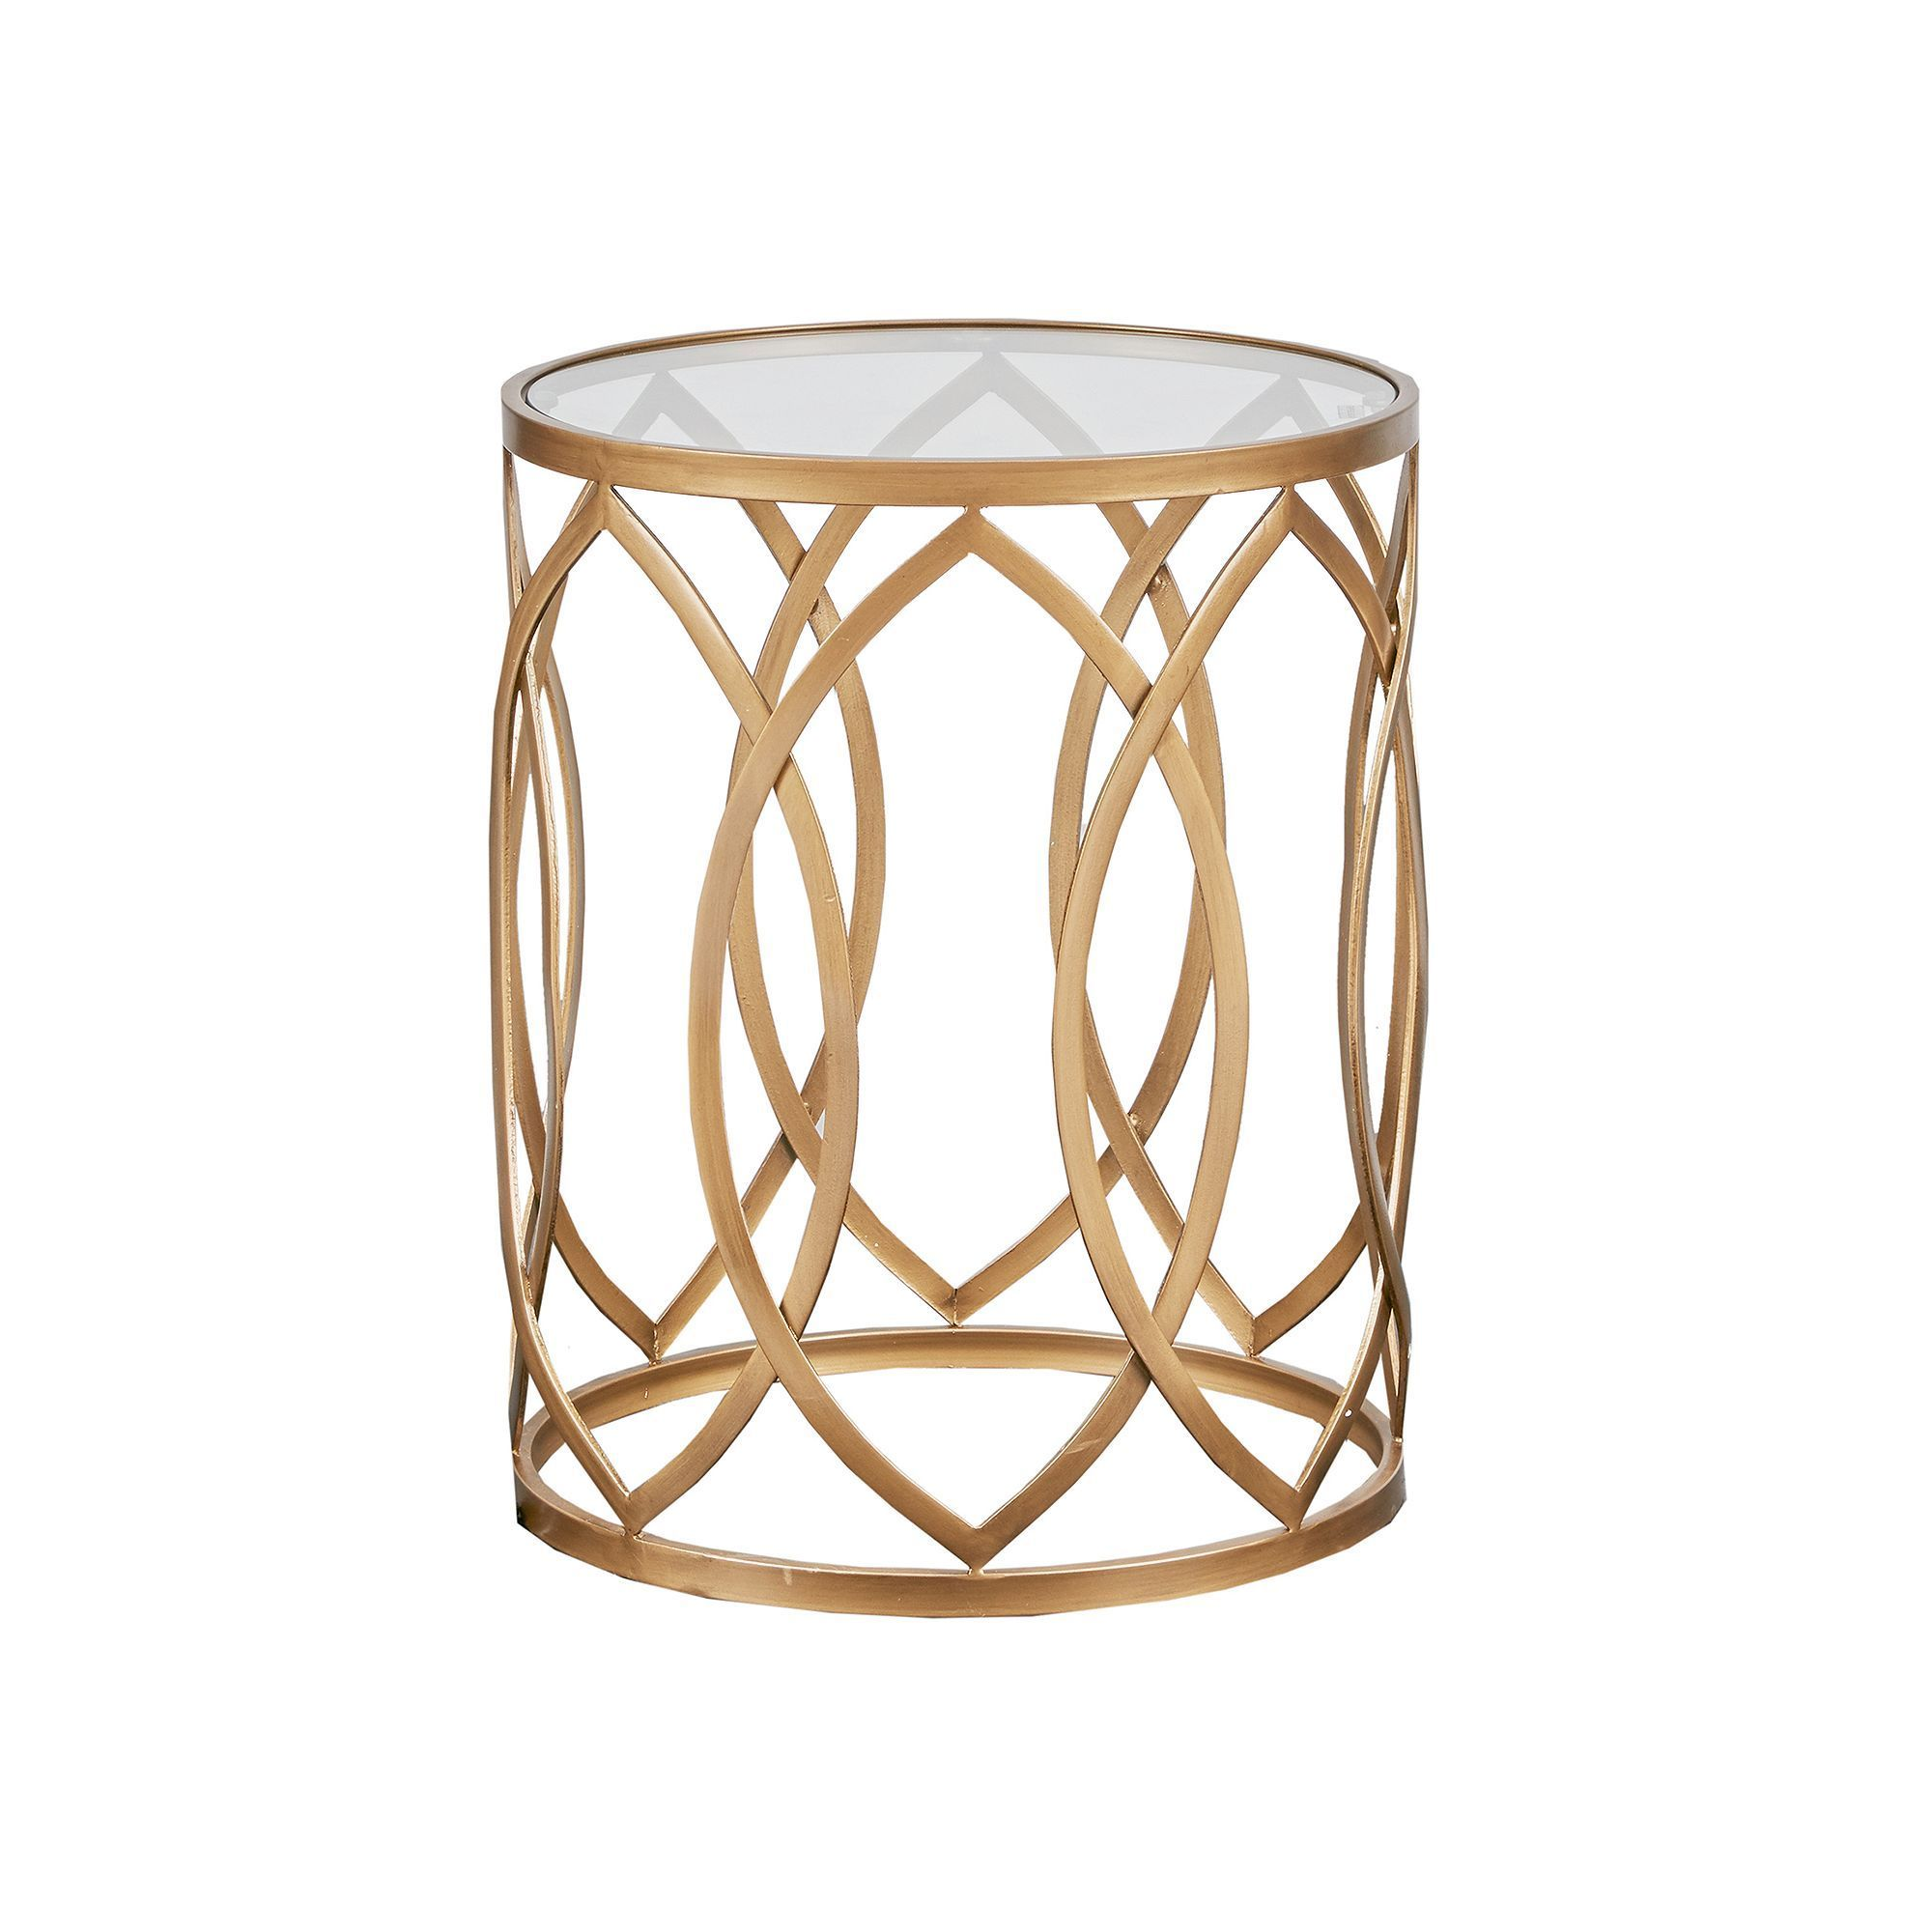 madison park coen metal end table products gold accent bedroom night stands antique round pedestal exterior ethan allen dining chairs wide nightstand drum throne rustic and wood